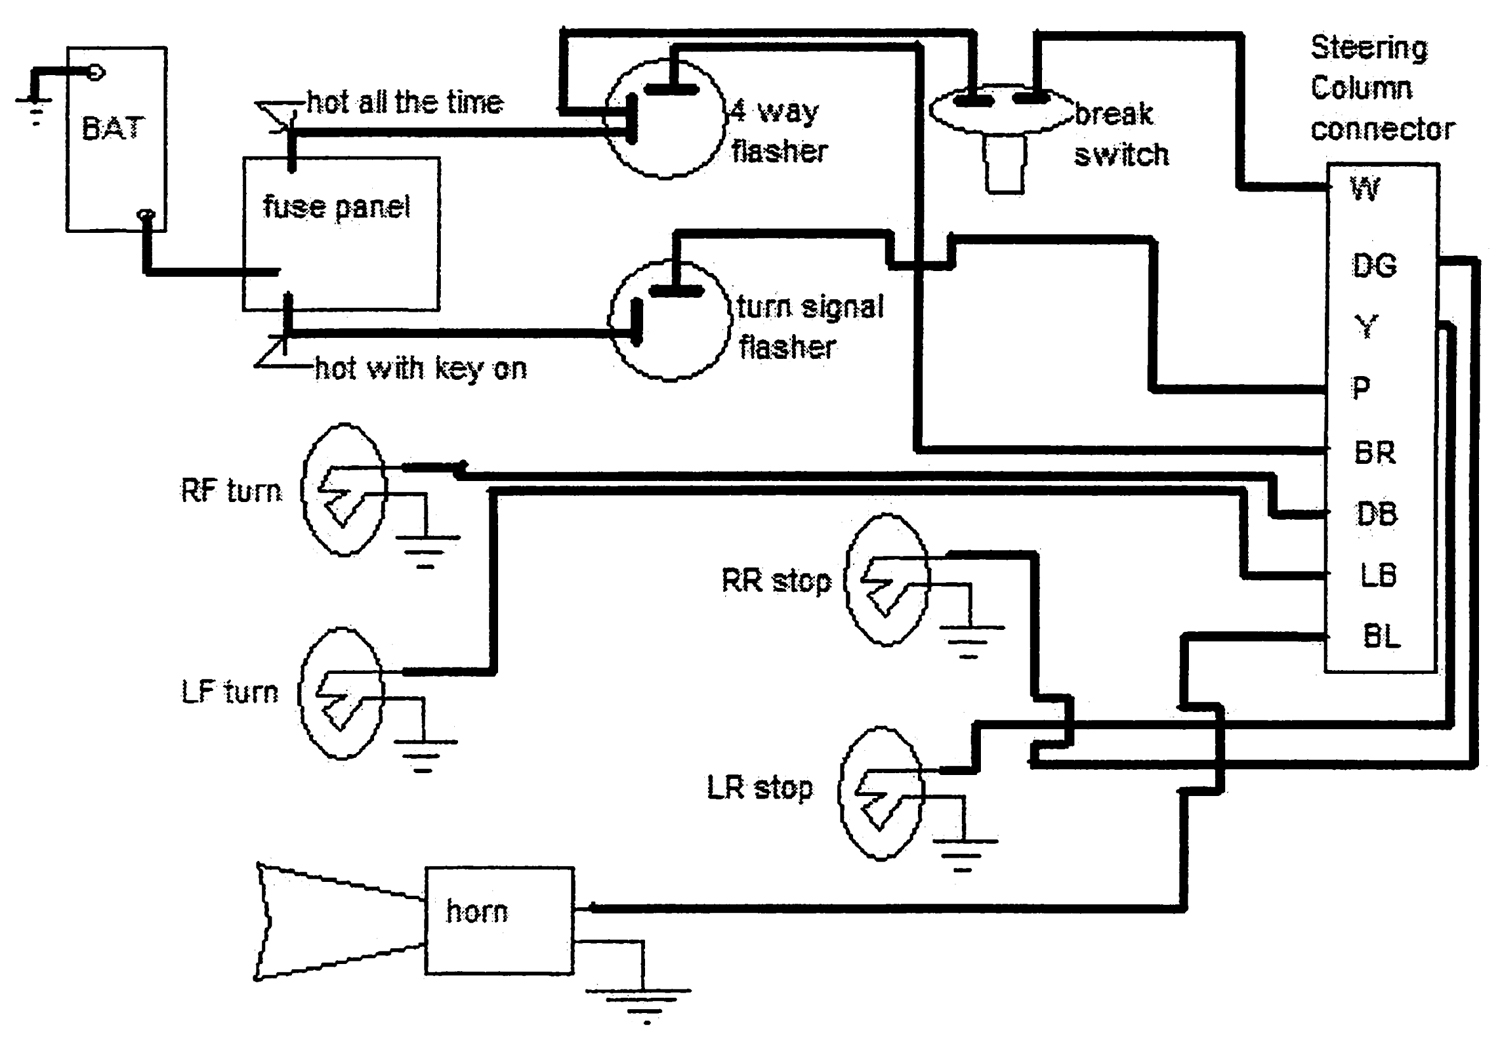 elect sycmatic tech tips gm steering column wiring diagram at virtualis.co